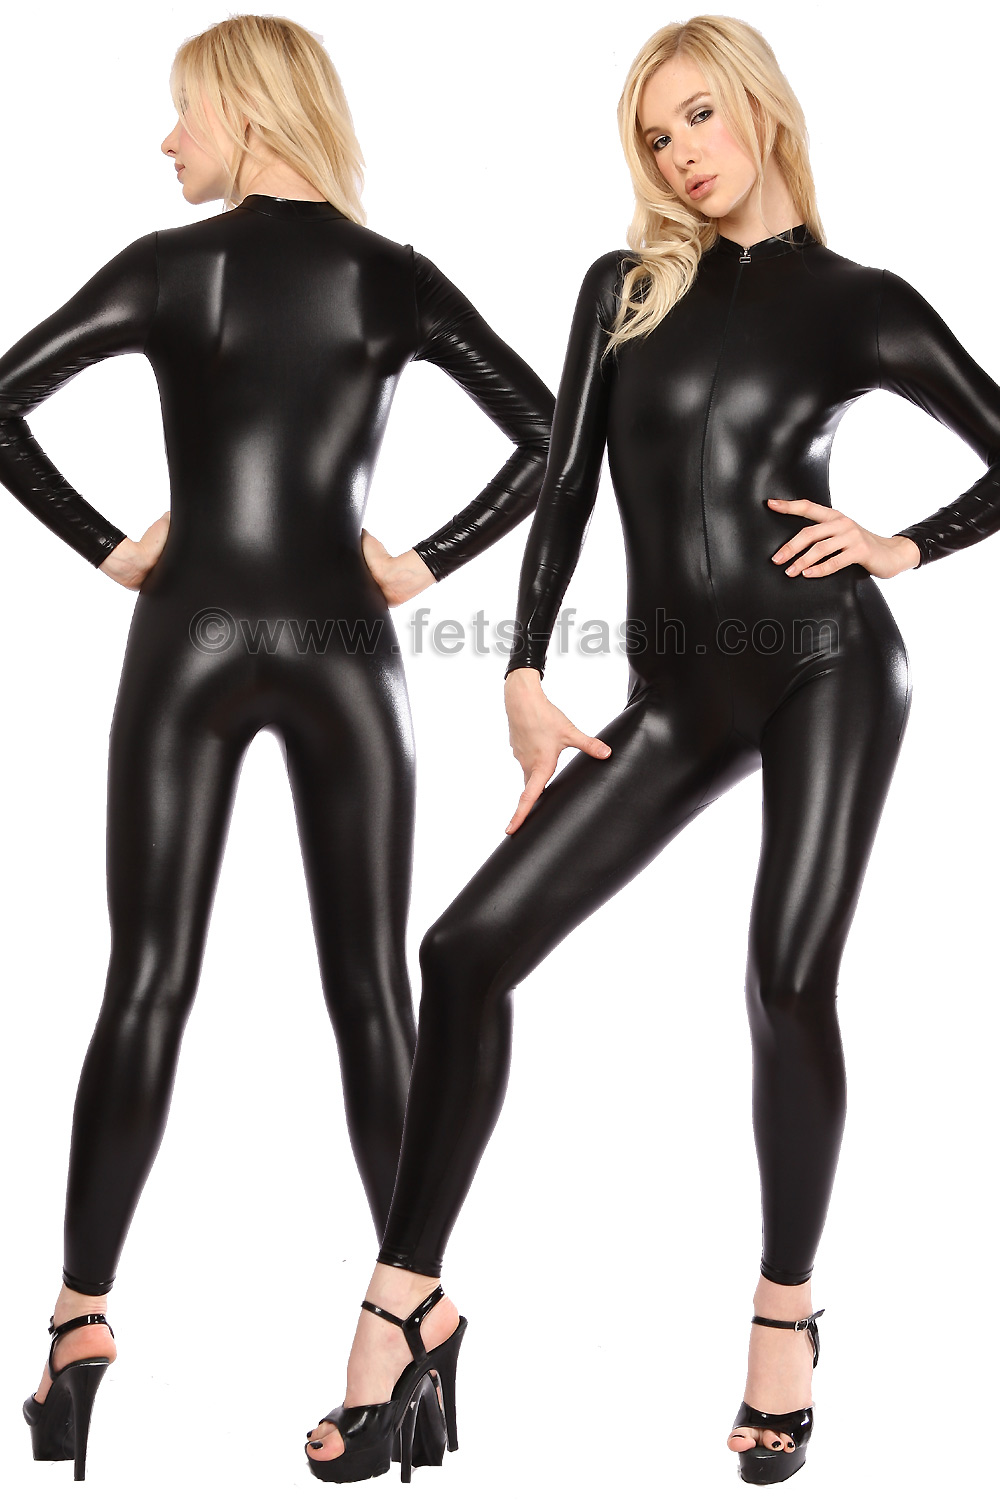 Catsuit With Front Zip Fastener Into Shiny Colors Eur 99